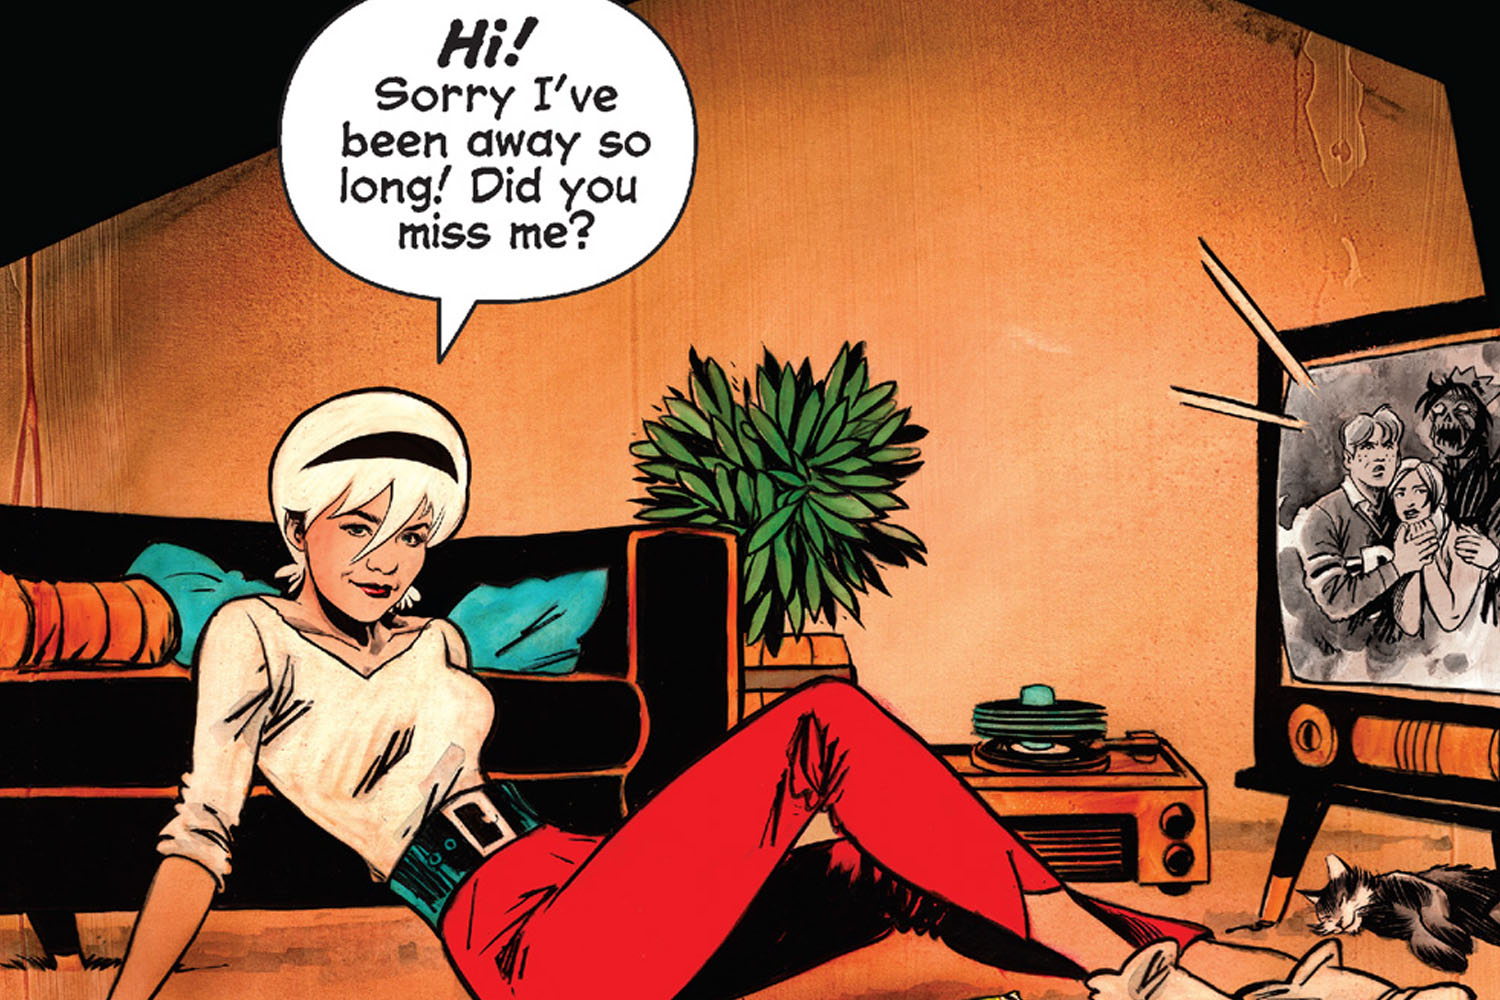 'Chilling Adventures of Sabrina' #9 takes us back to Sacasa's Greendale